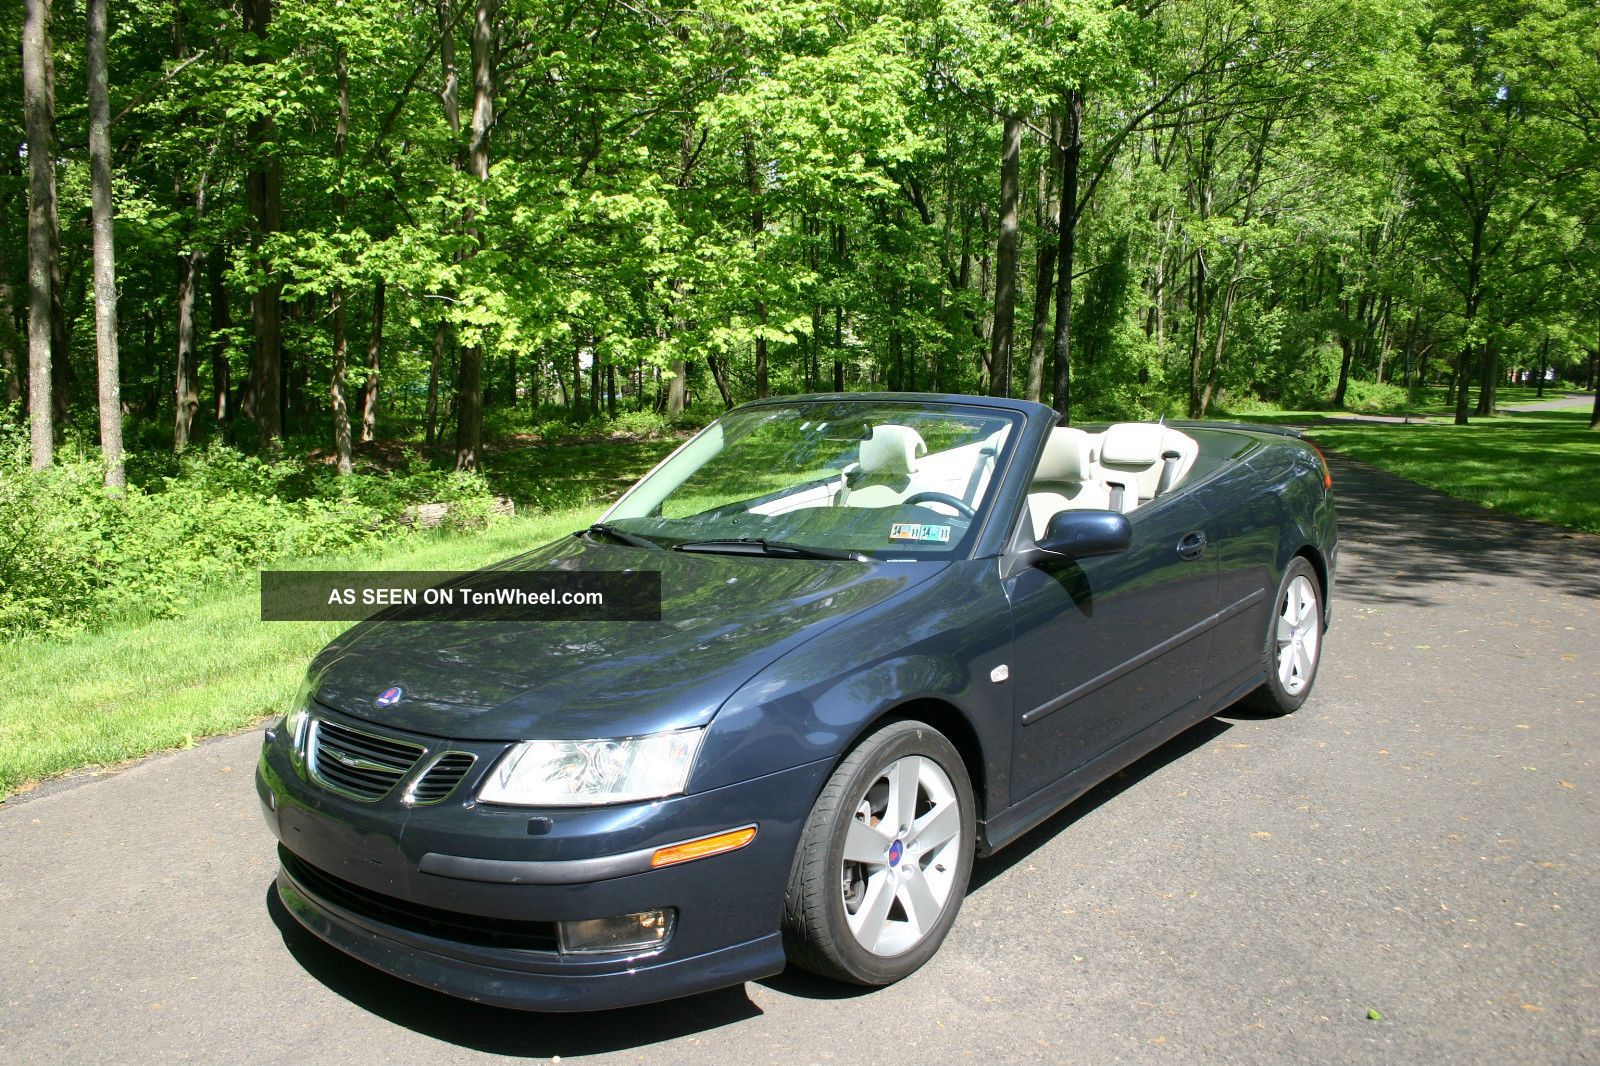 2006 Saab Aero Convertible 9-3 photo